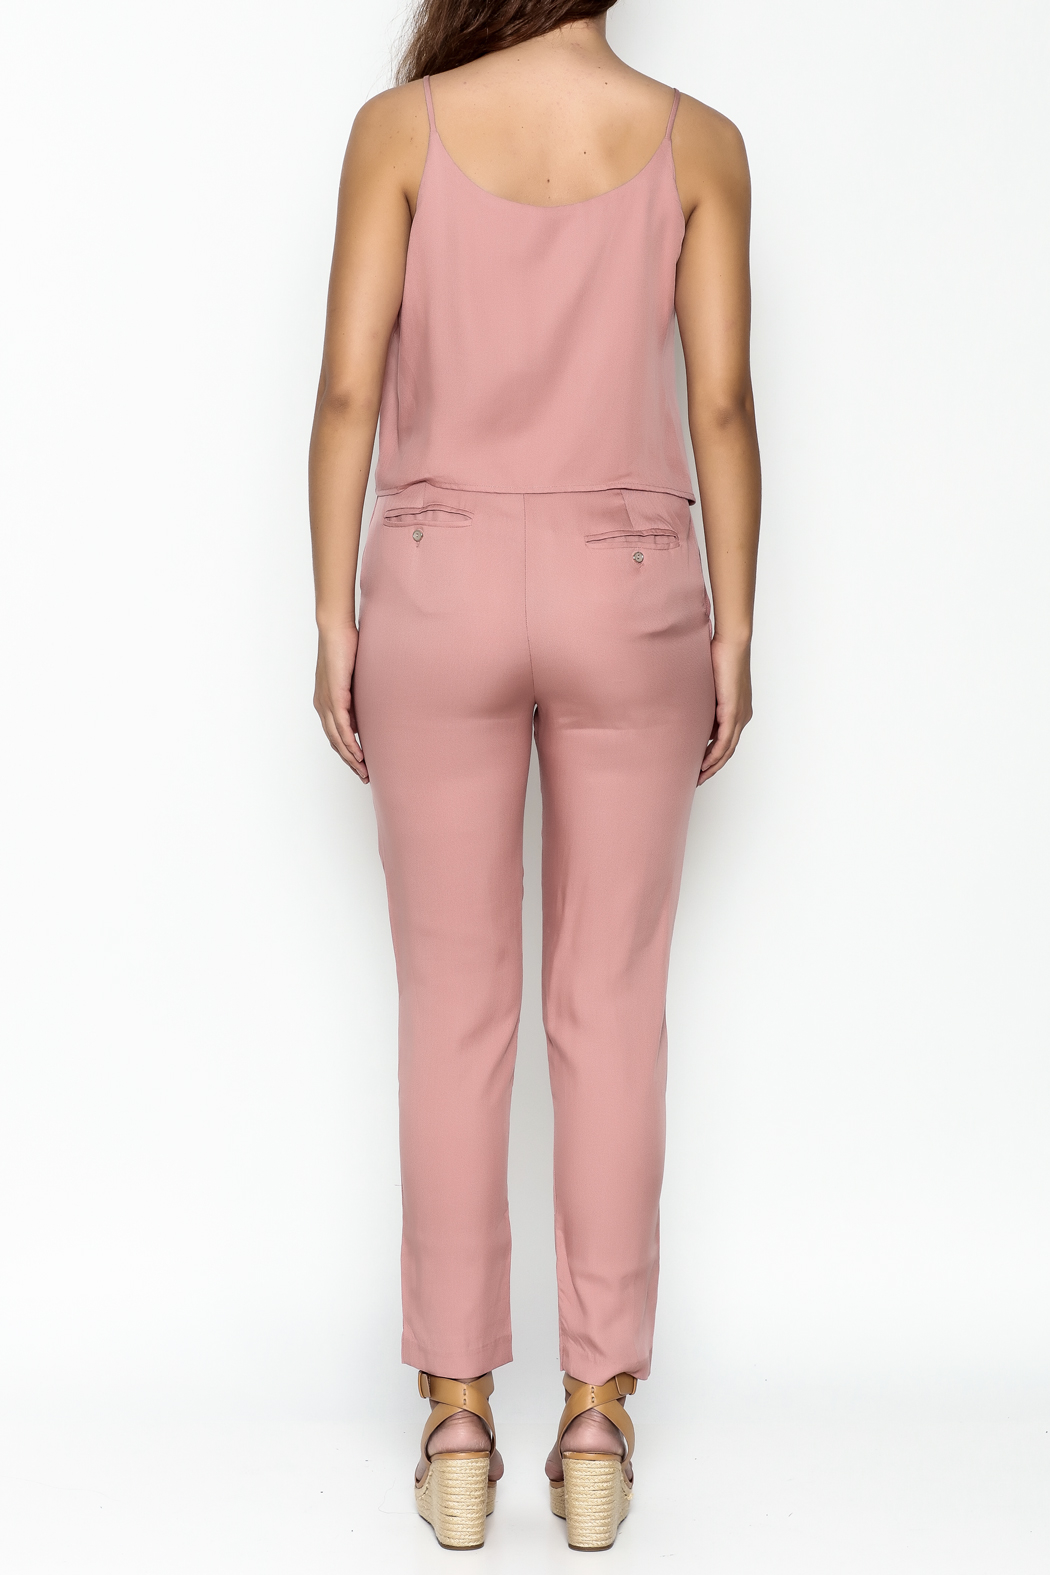 MOMNI BOUTIQUE Chic Pink Jumpsuit - Back Cropped Image